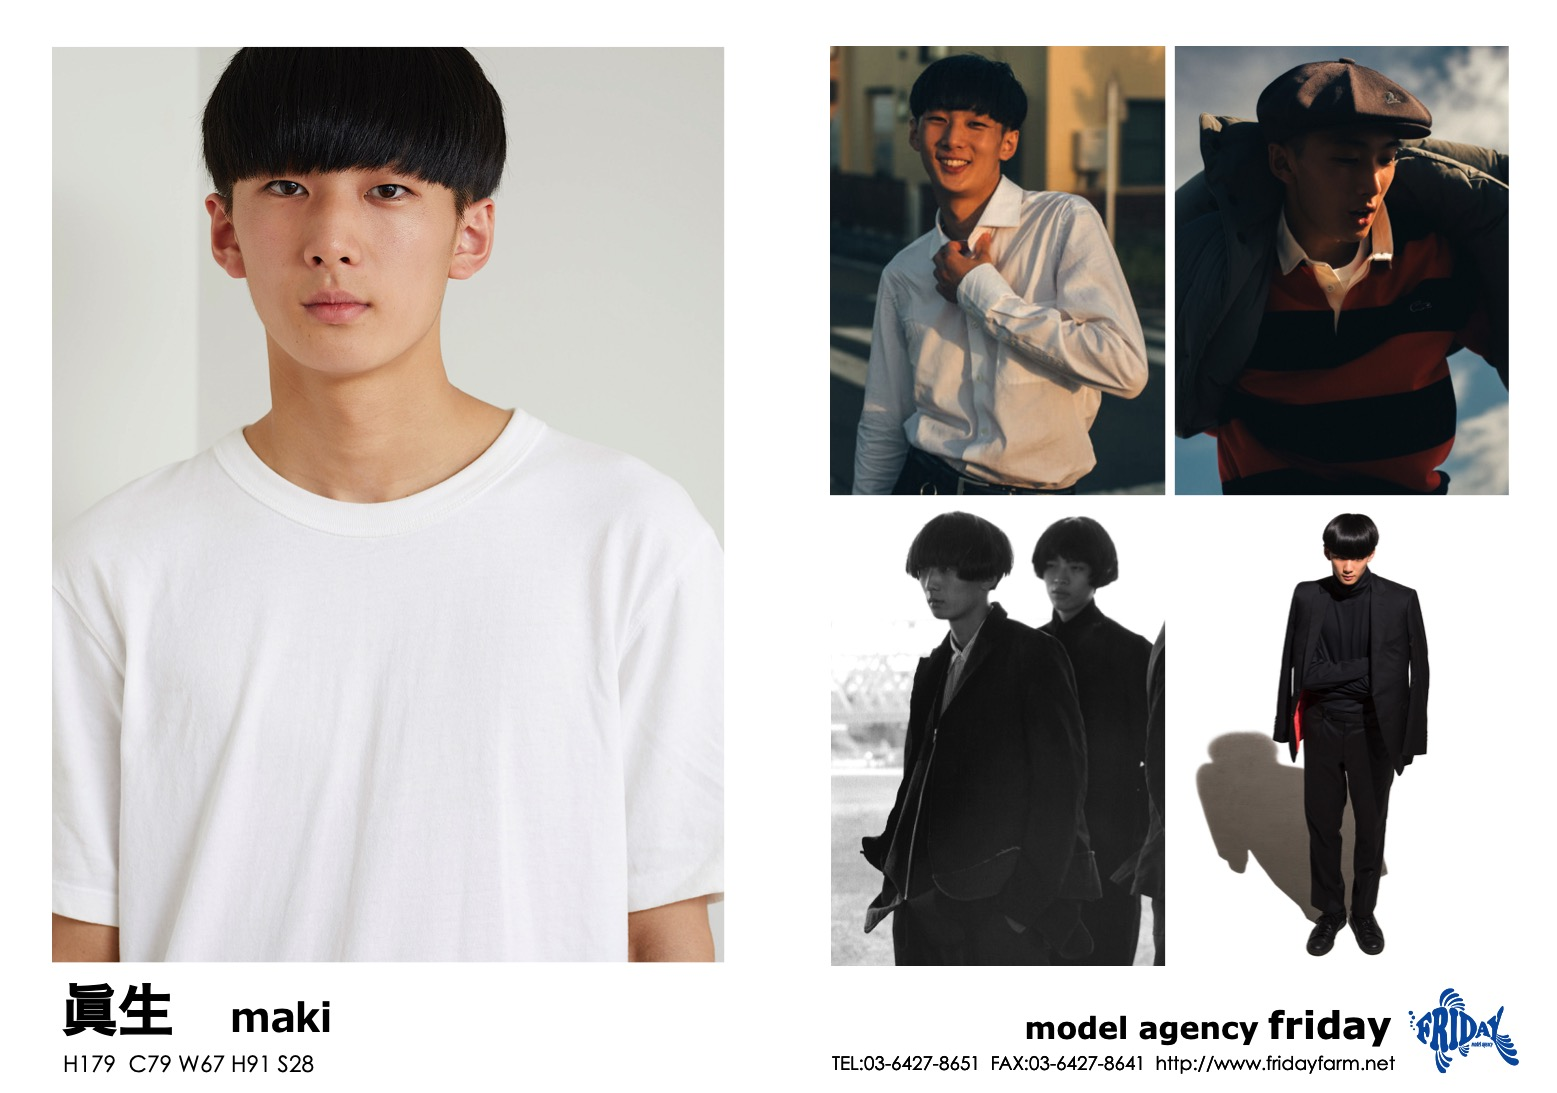 眞生 - maki | model agency friday